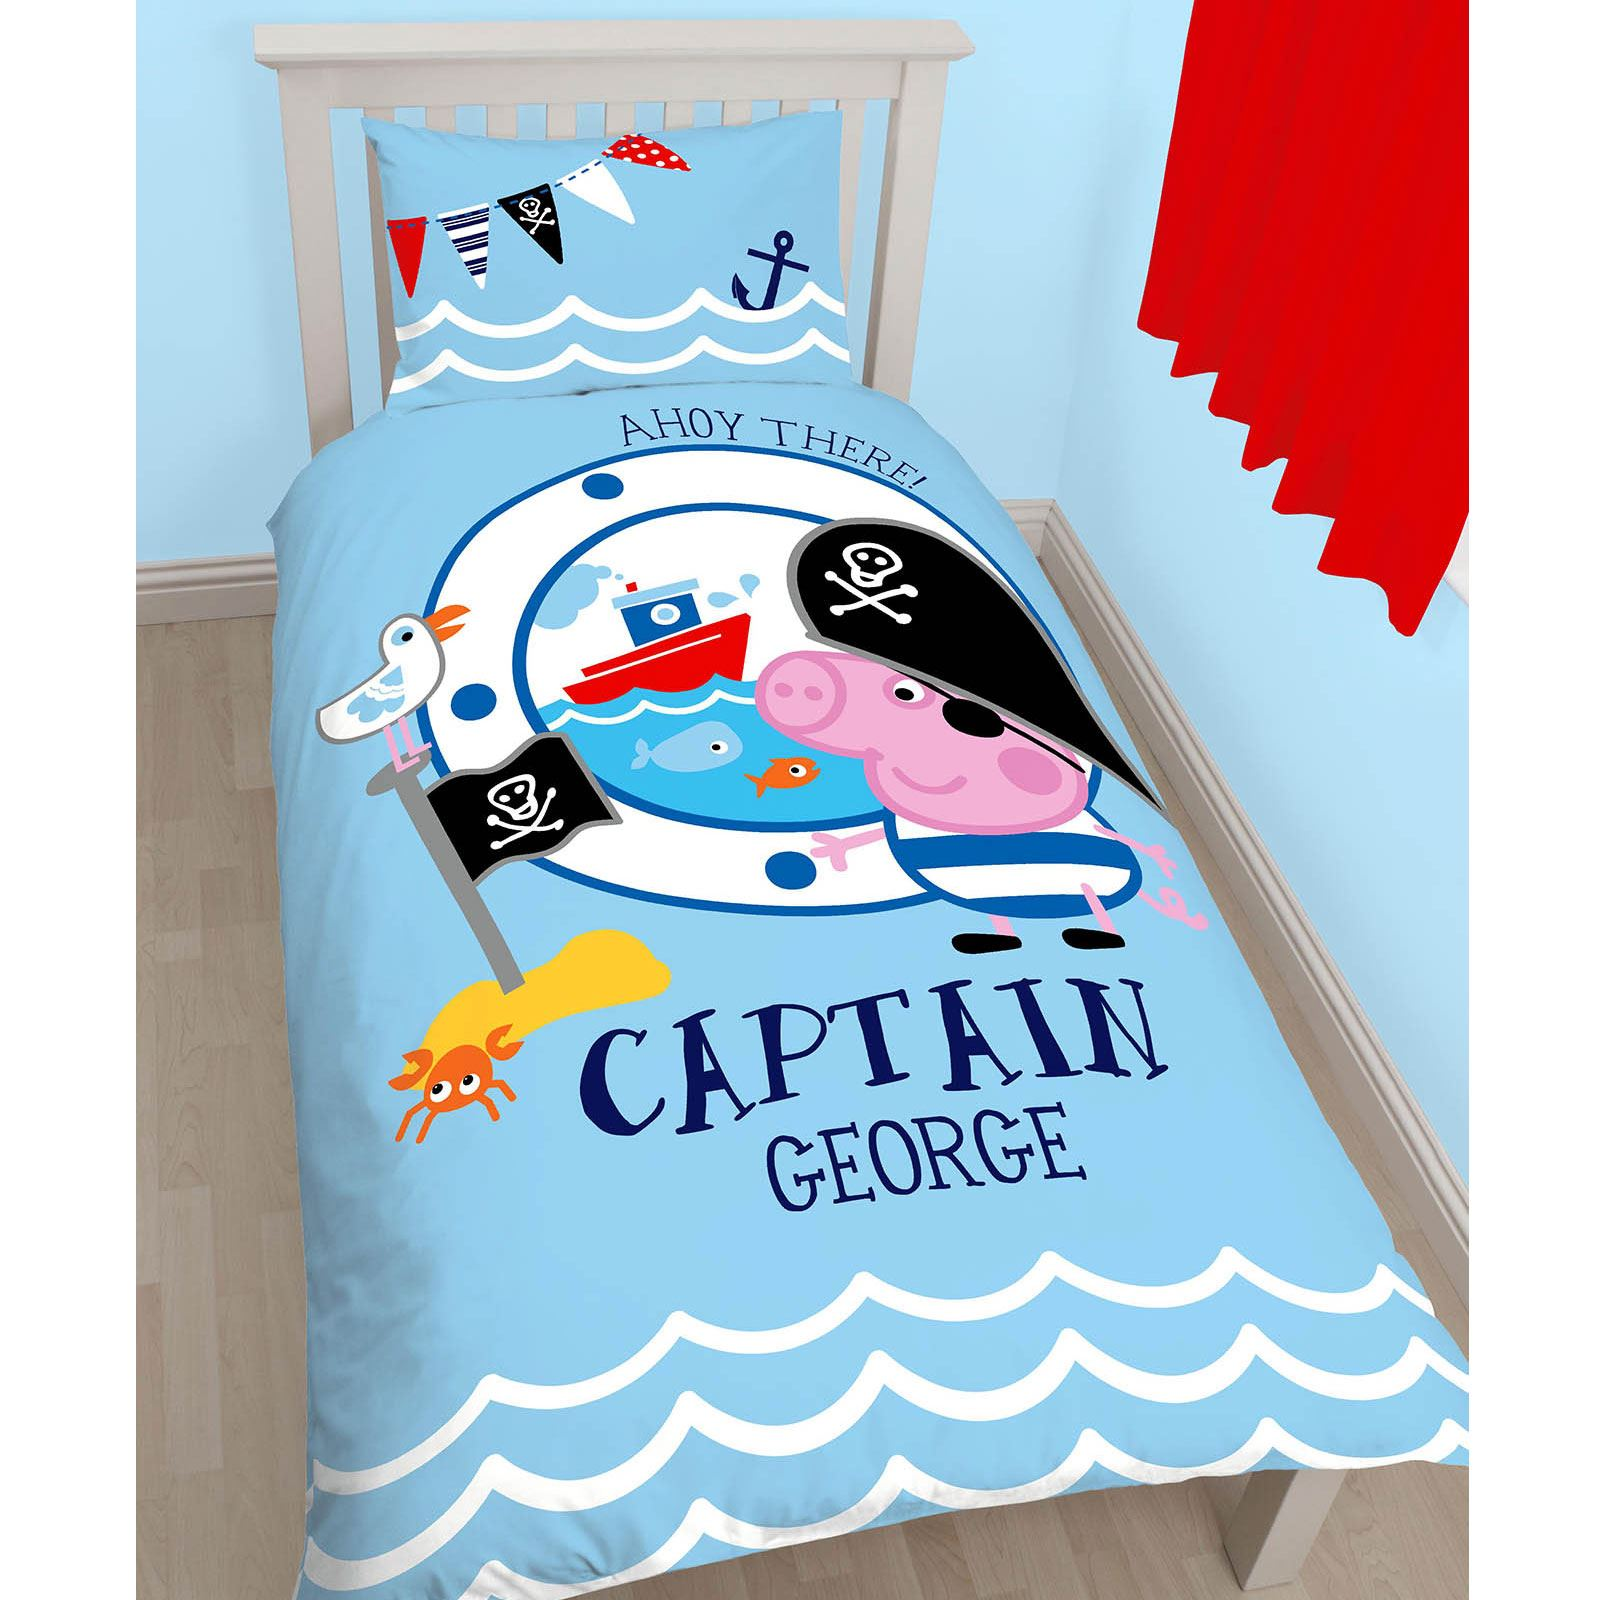 PEPPA PIG GEORGE PIRATE SINGLE PANEL DUVET COVER SET + FREE SMALL